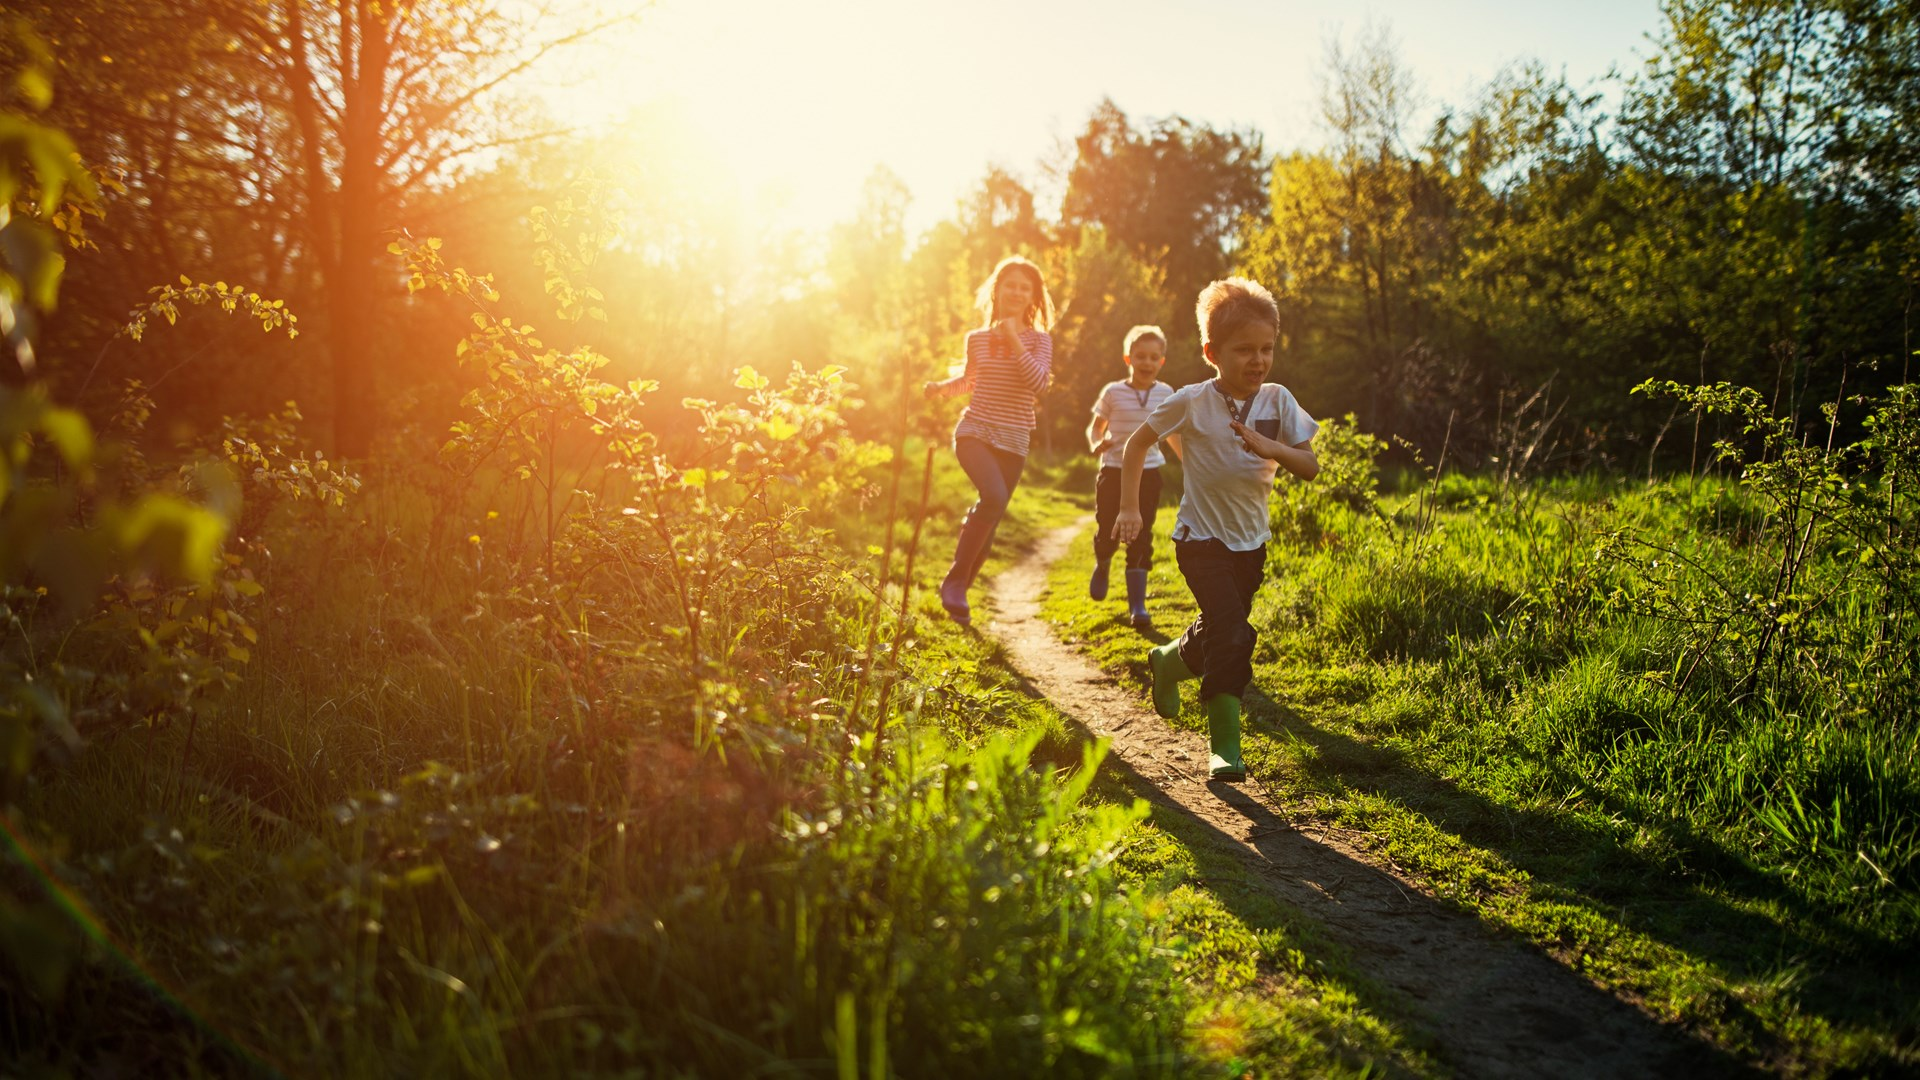 A young girl and two young boys running through a path in the sunshine